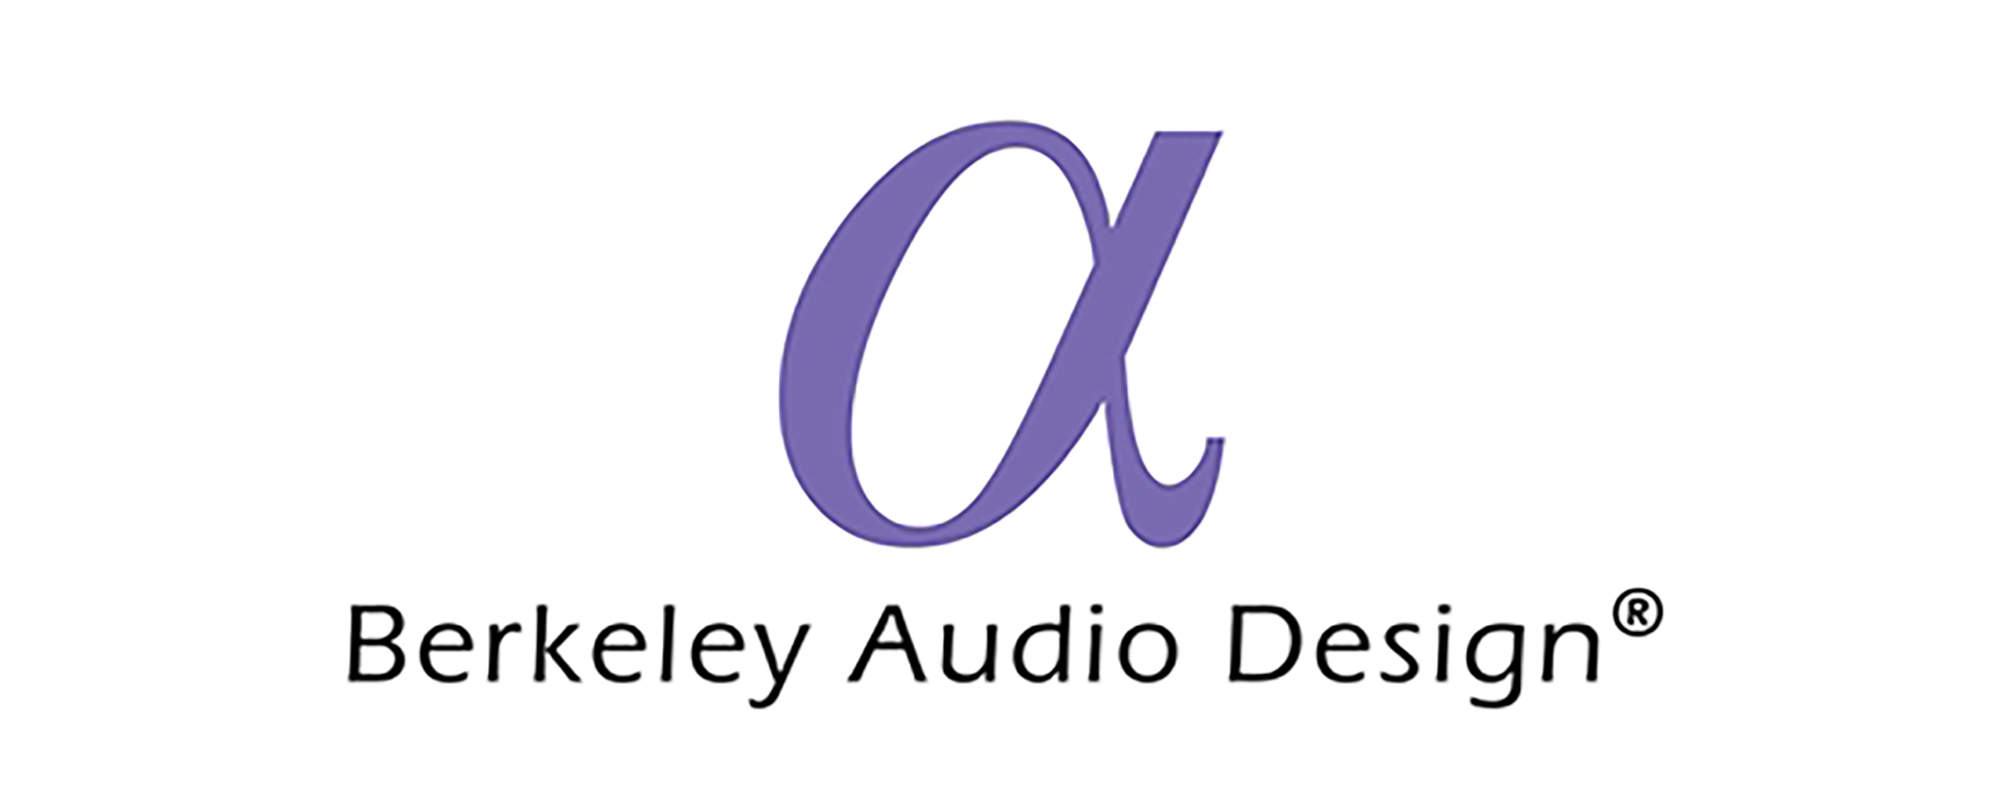 Berkeley Audio Design Banner 4 - Norman Audio